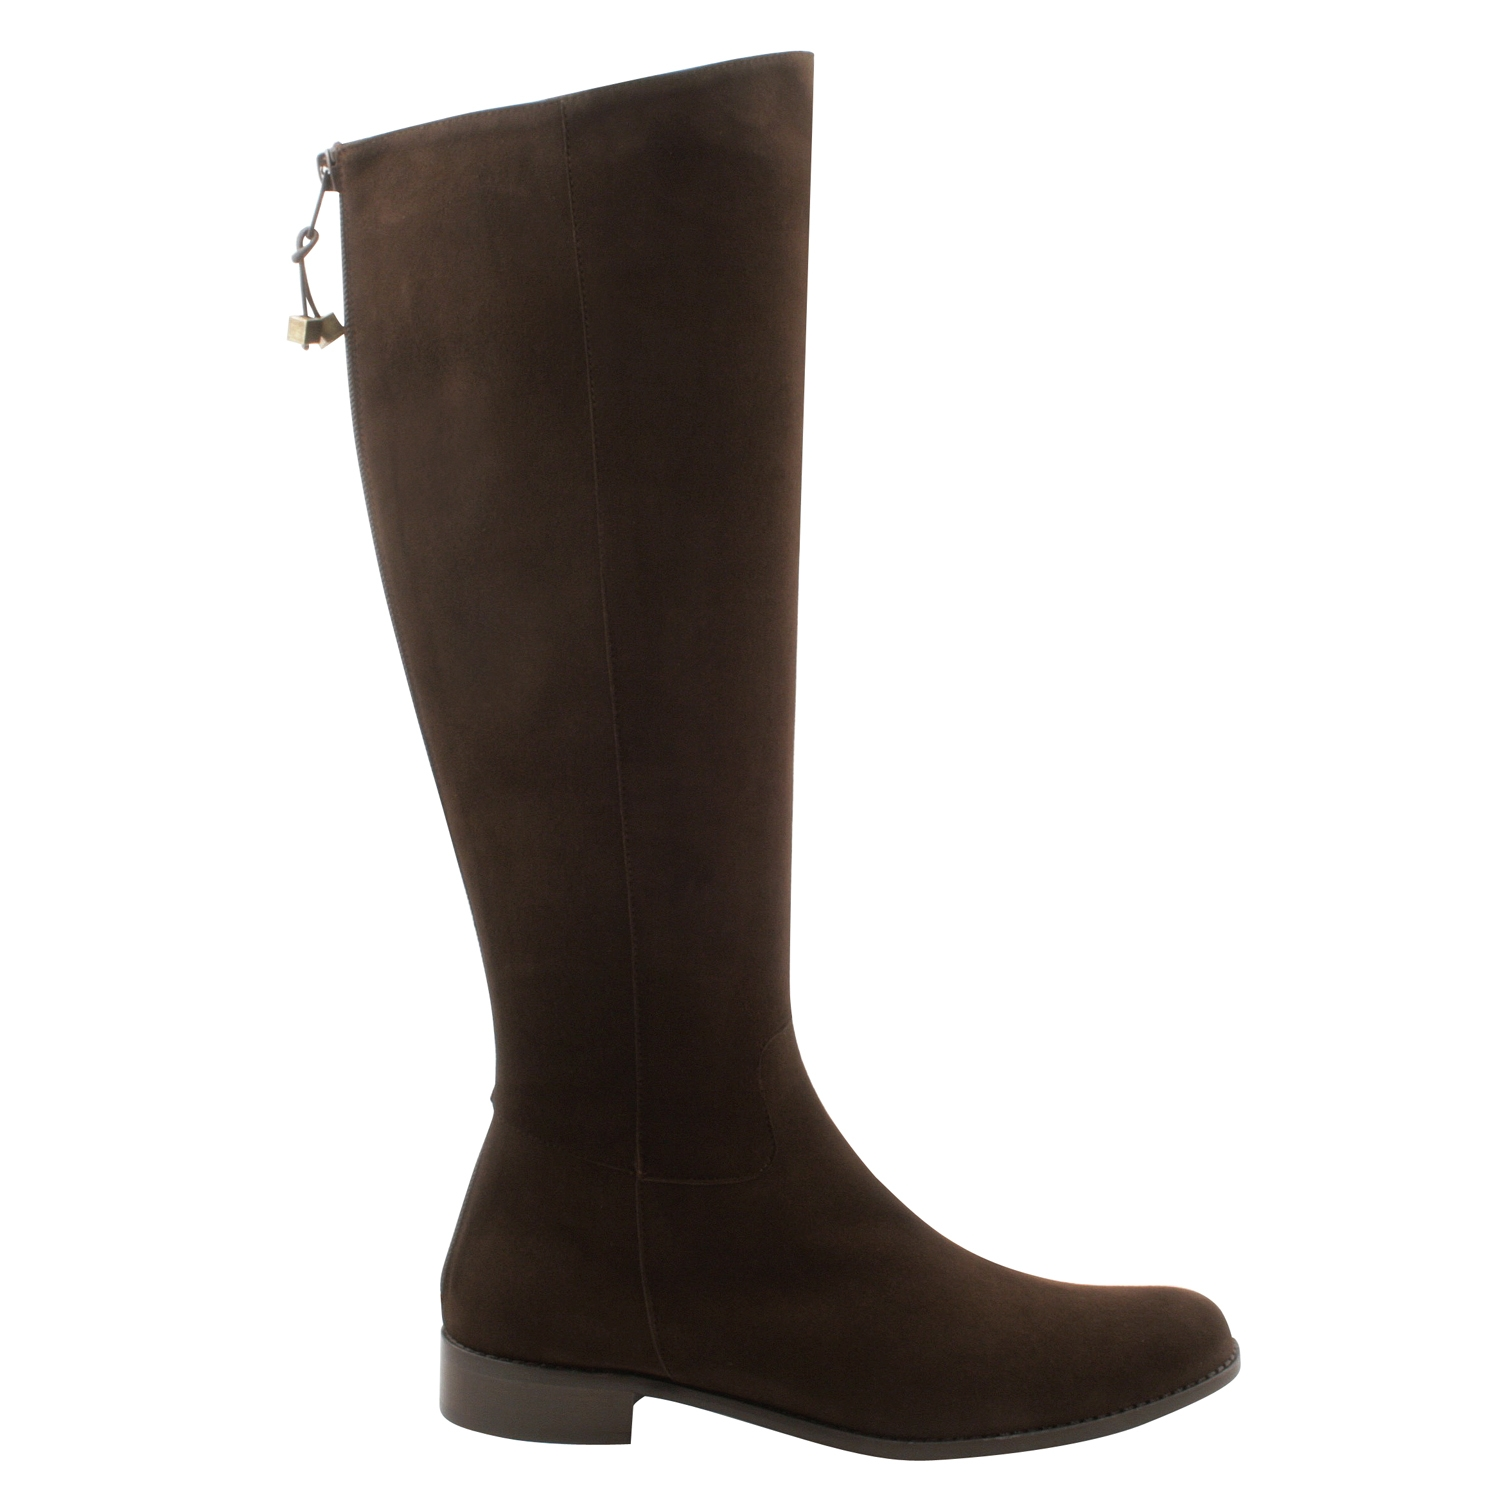 Exclusif Paris Kim - Bottes en cuir - marron